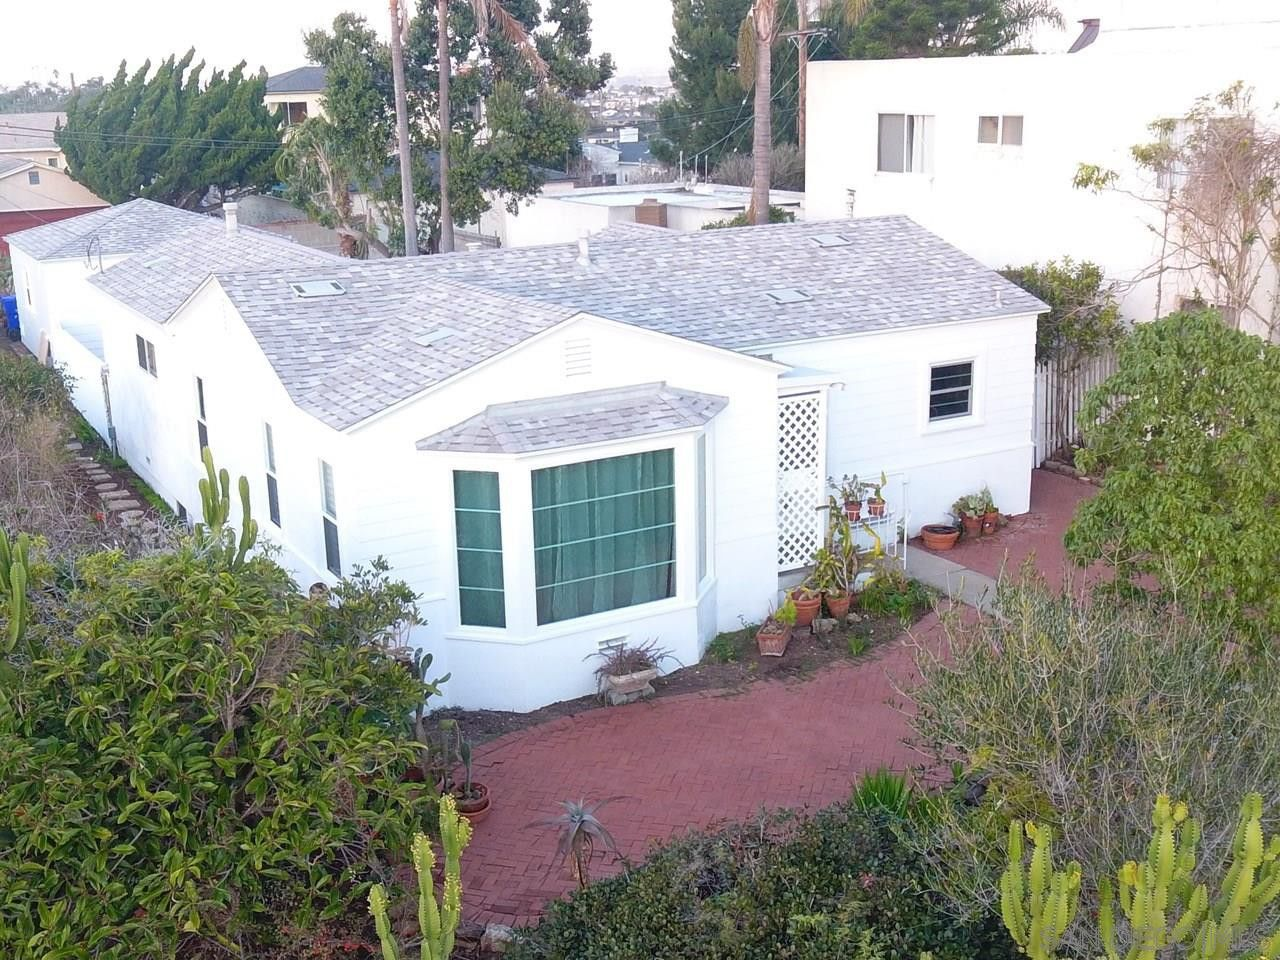 3476 Ullman St San Diego Ca 92106 3 Bedroom House For Rent For 4 950 Month Zumper